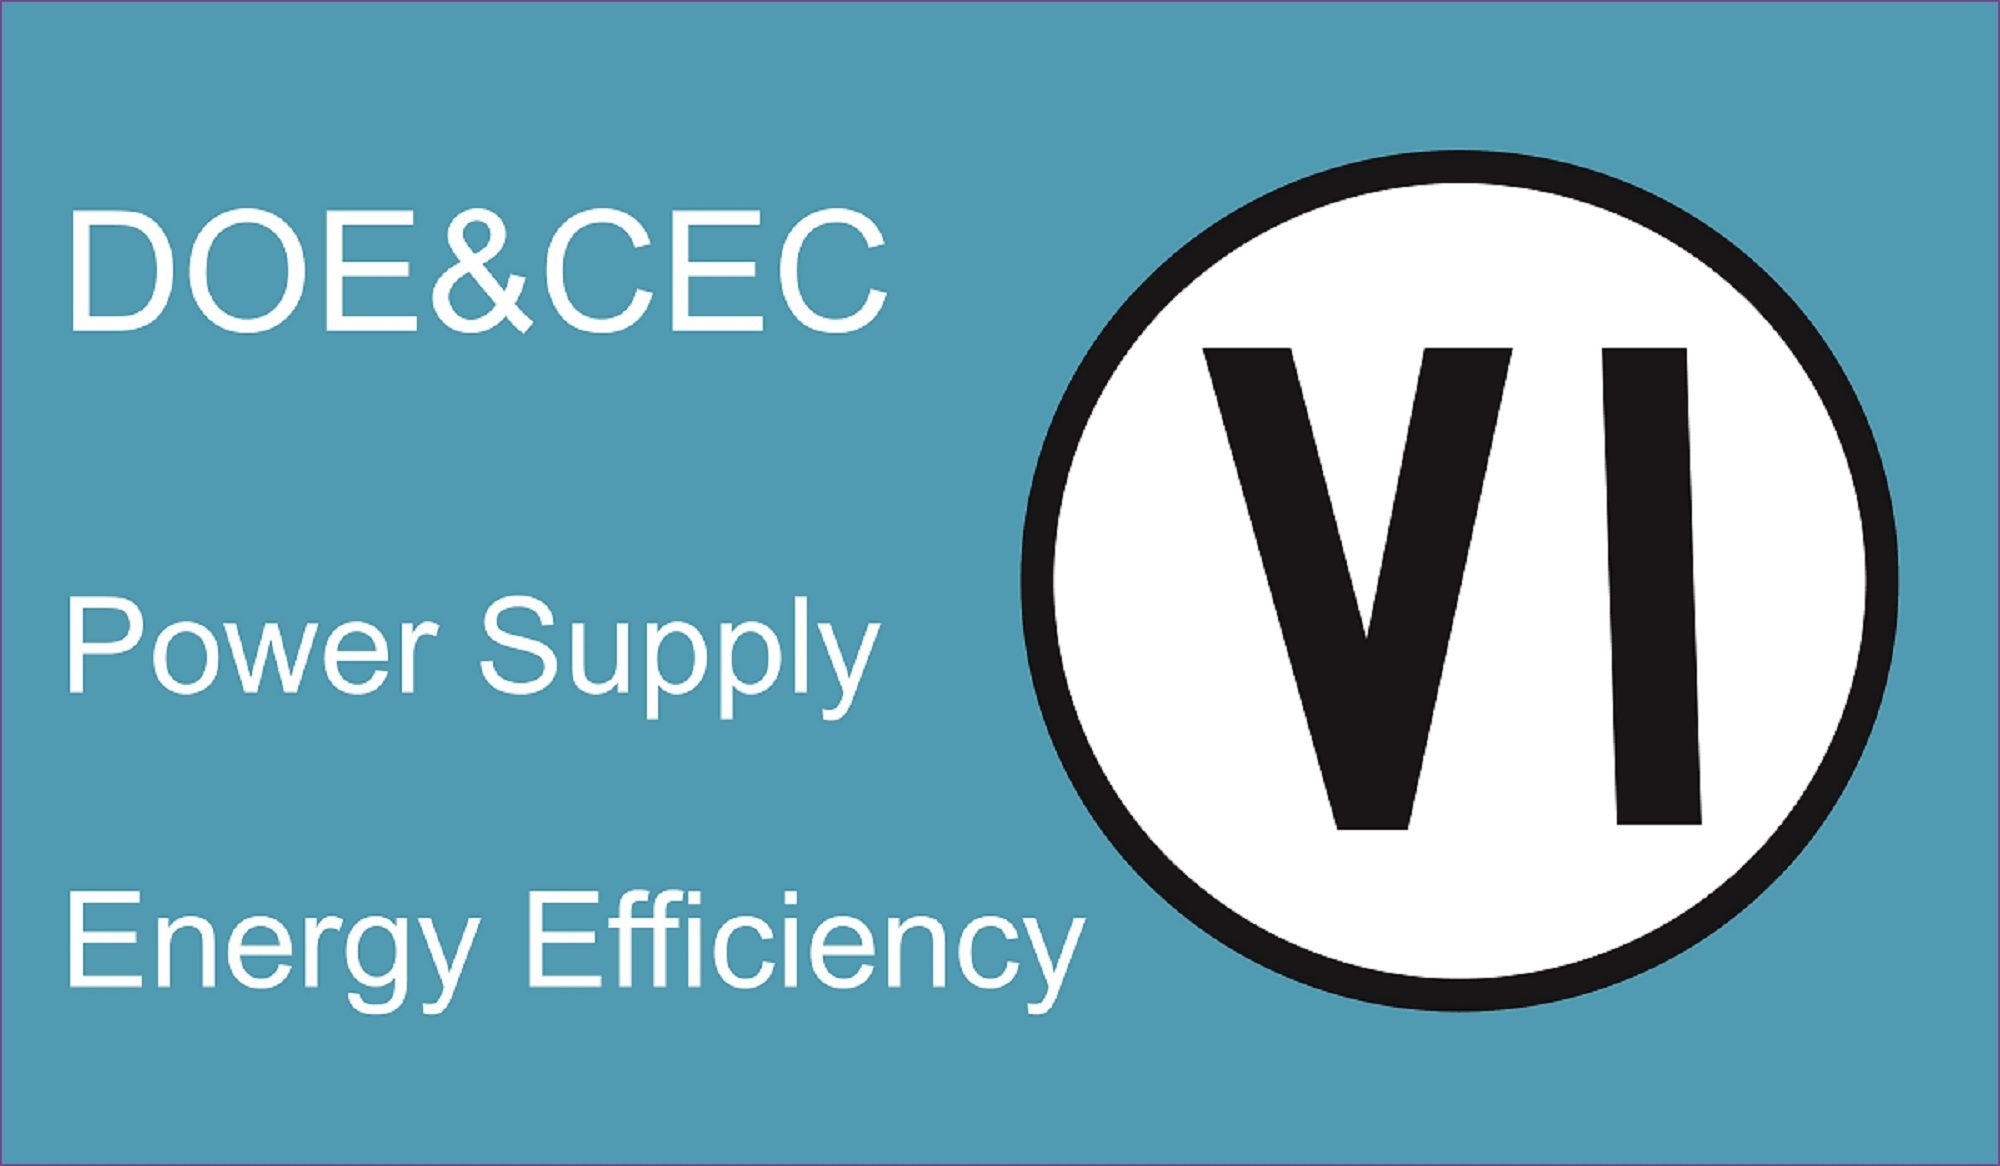 The latest required Energy Efficiency level VI in USA